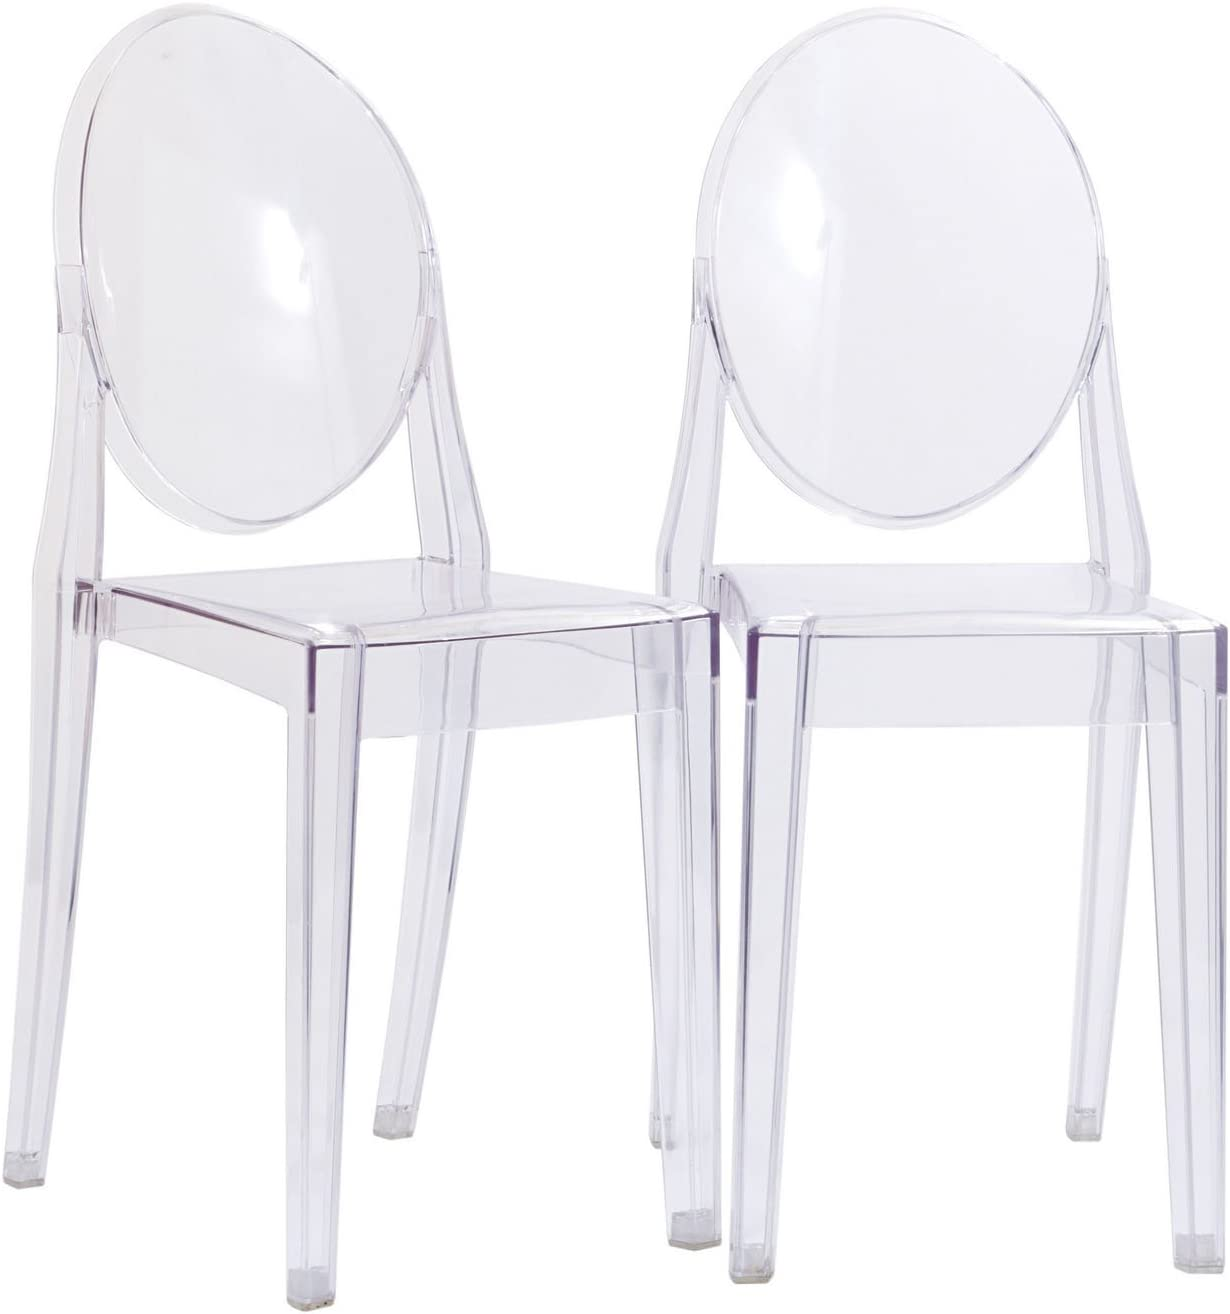 Modway Casper Modern Acrylic Stacking Two Kitchen and Dining Room Chairs in Clear – Fully Assembled